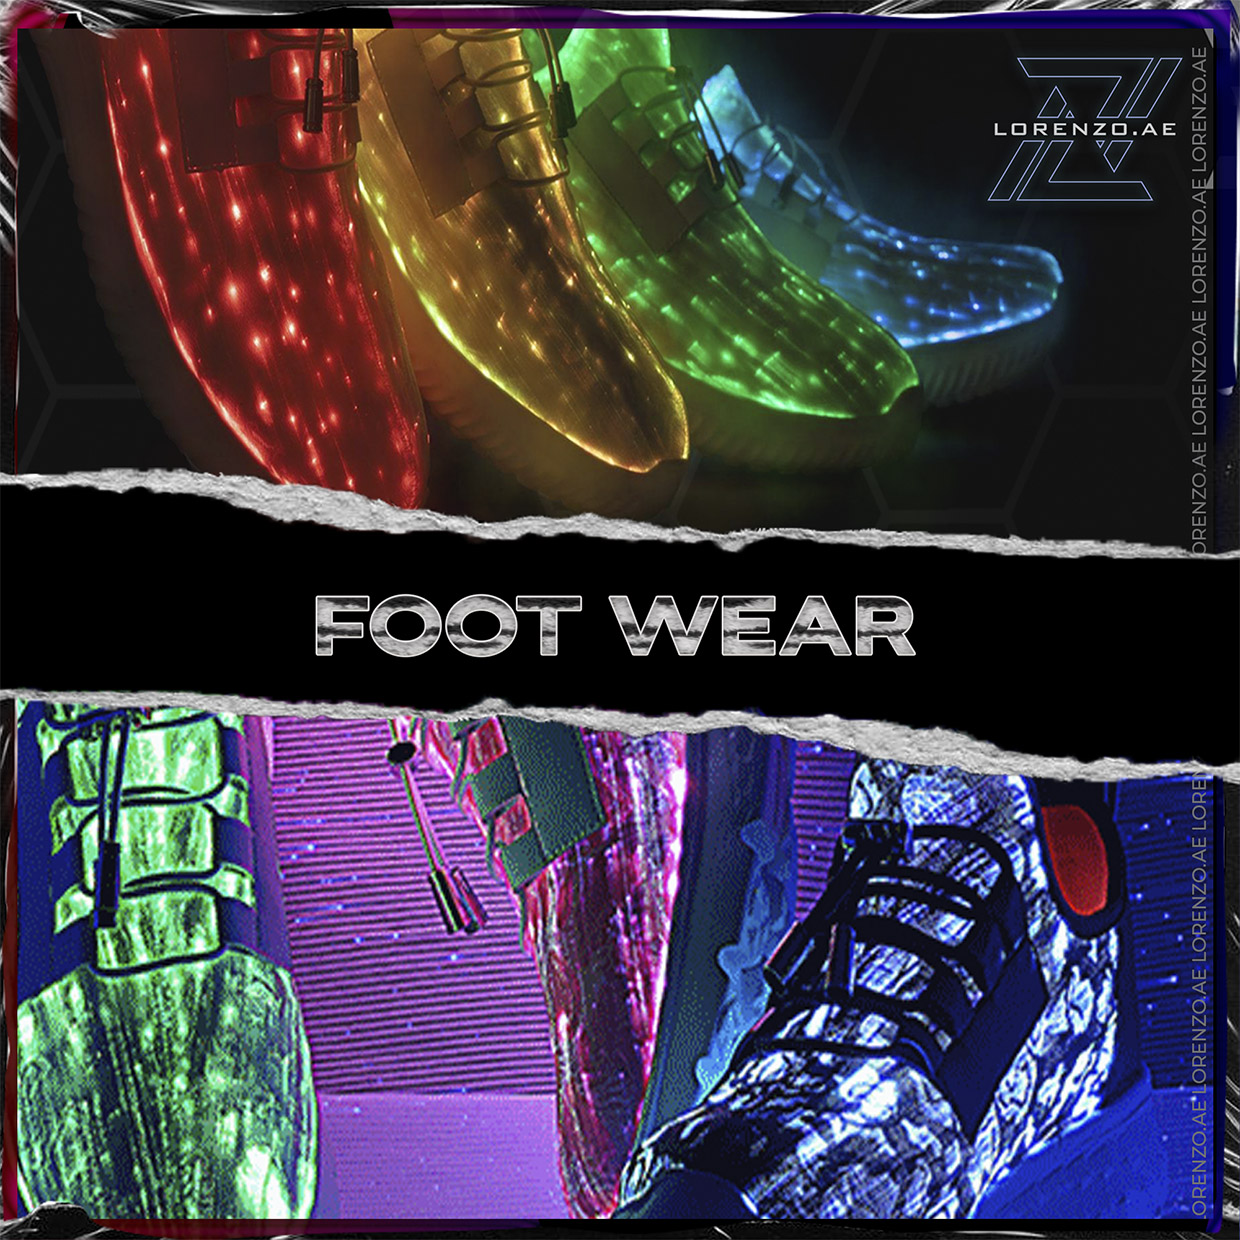 Category foot wear